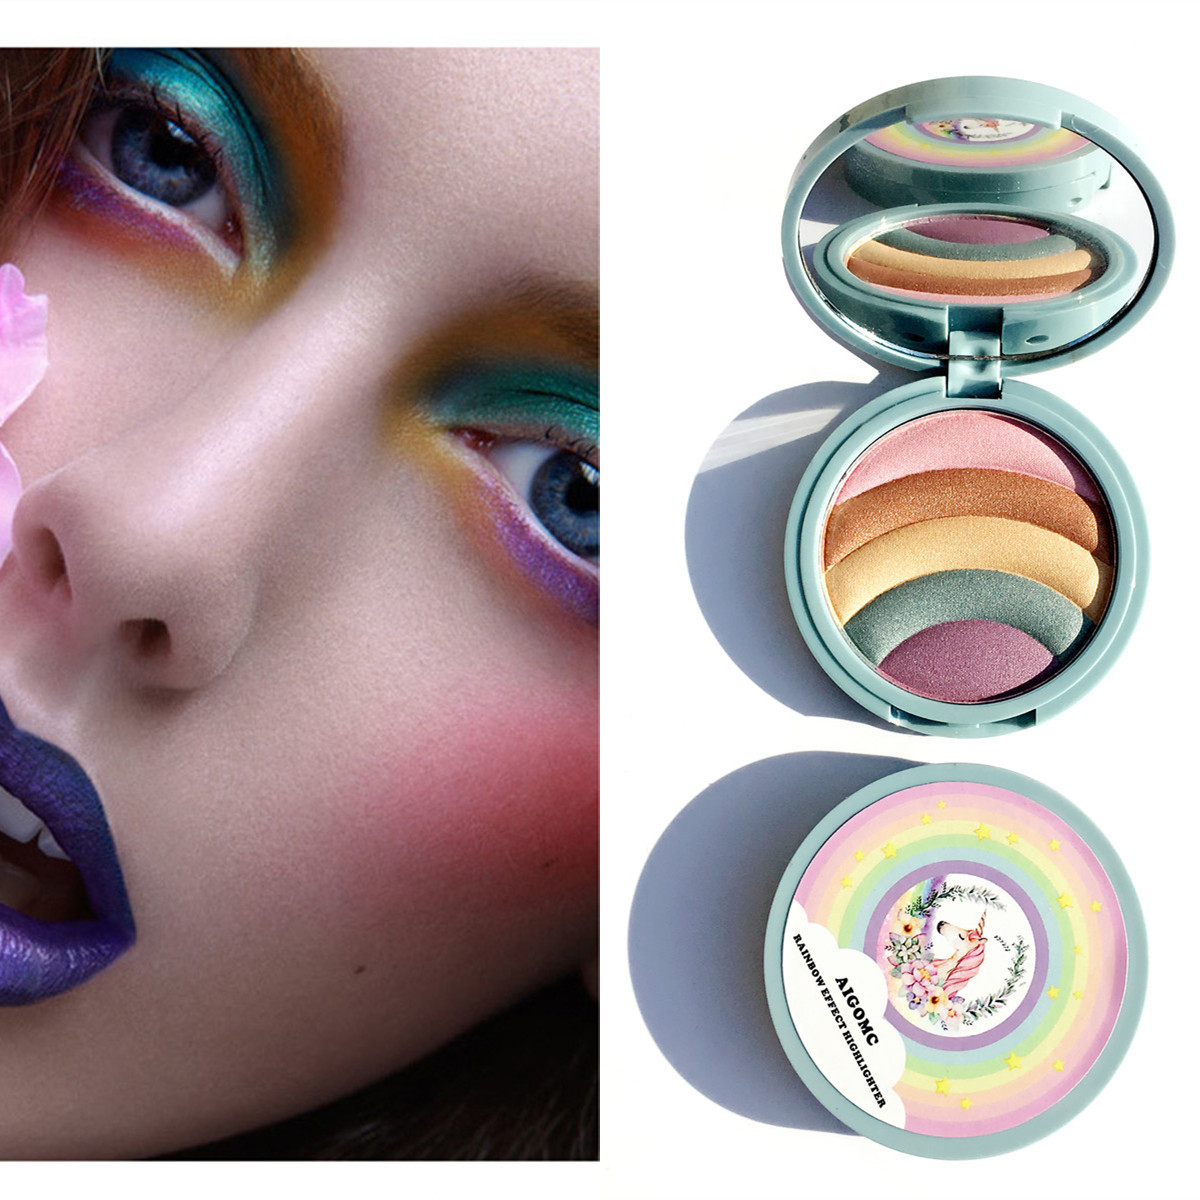 Beauty Essentials Beauty & Health Realistic High Quality 26 Colors Eye Shadow Makeup Eyeshadow Palette Cosmetic Eyeshadow Blush Lip Gloss Powder New 50% OFF